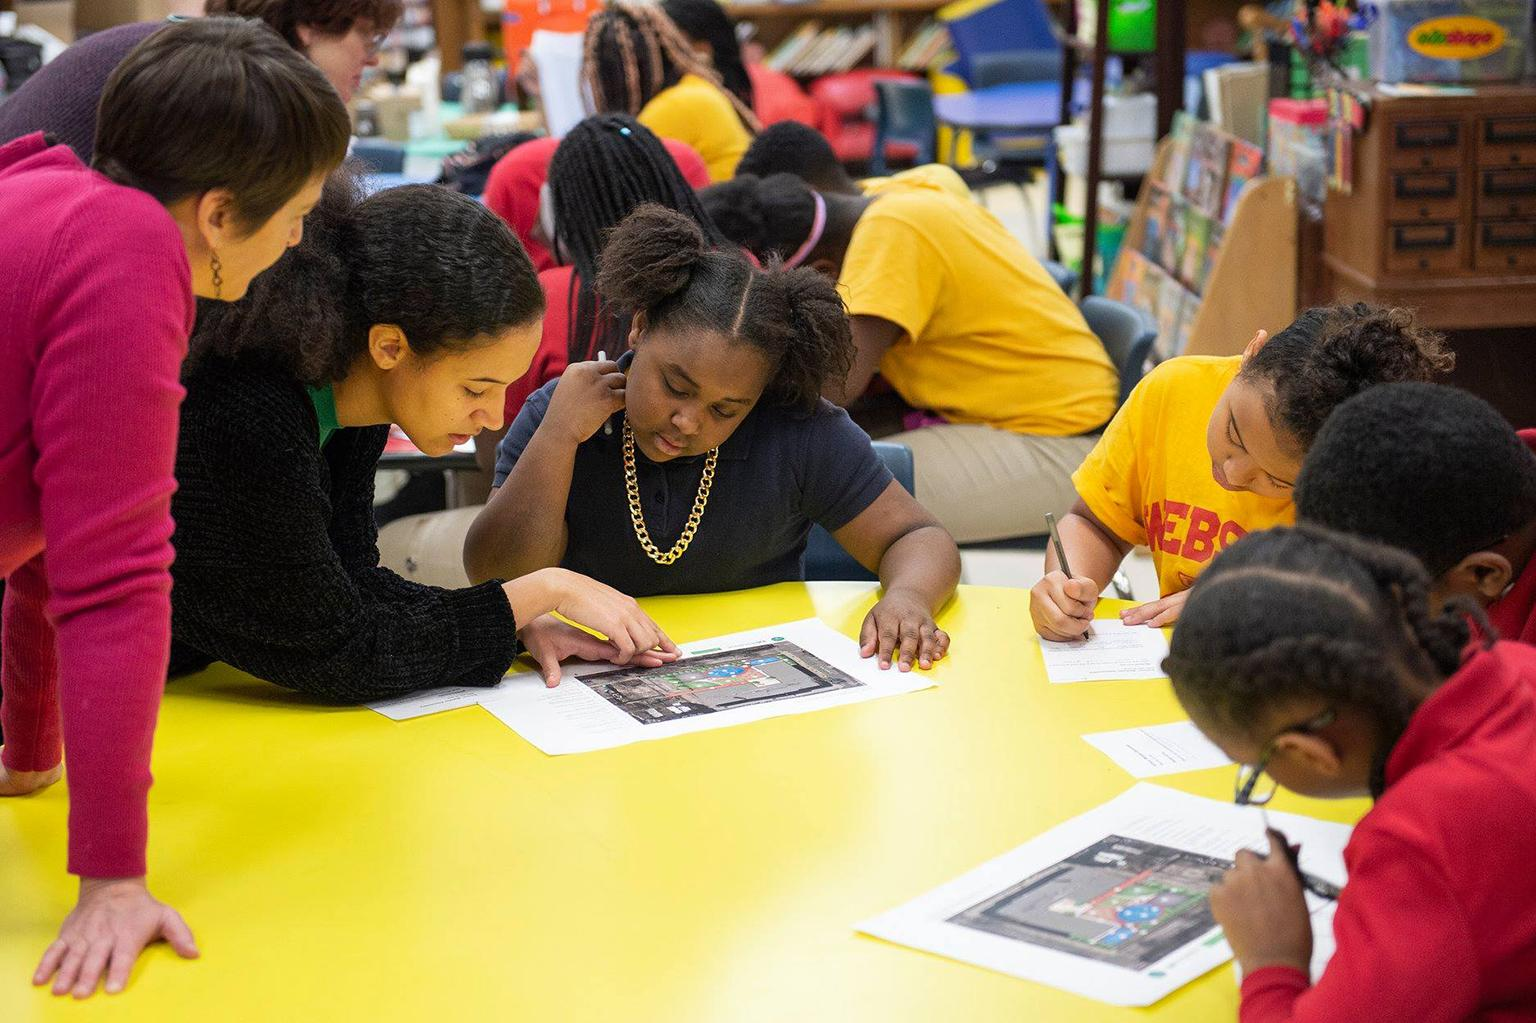 Students and teachers at Webster Elementary School in the Lawndale neighborhood review plans for a new schoolyard funded through the Space to Grow initiative. (Courtesy Metropolitan Water Reclamation District of Greater Chicago)